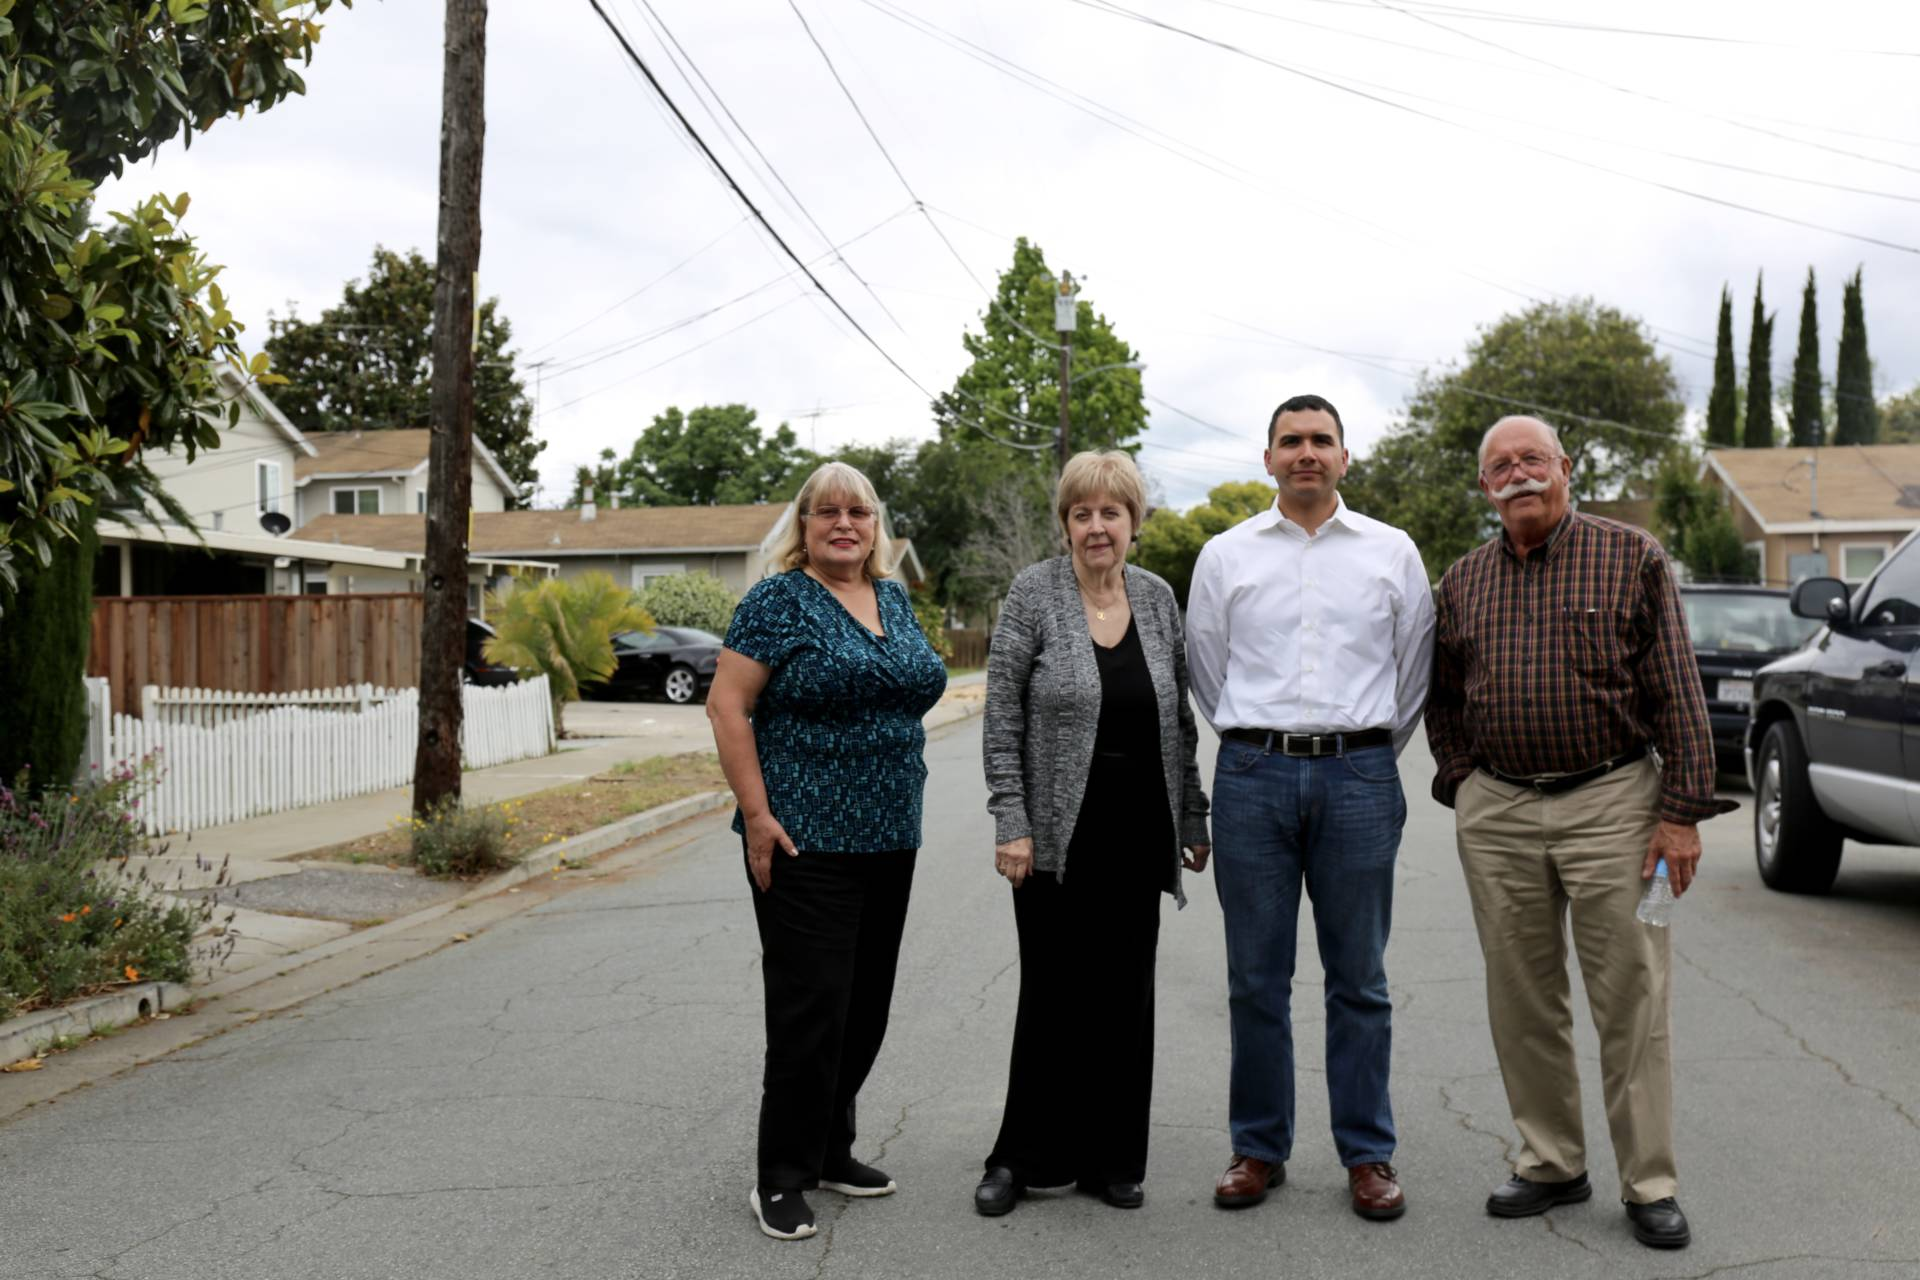 Henni Kaufman, Jane Power, Pete Sclafani and Ken Colson, members of the Burbank Community Council, stand in front of Power's home in Burbank.